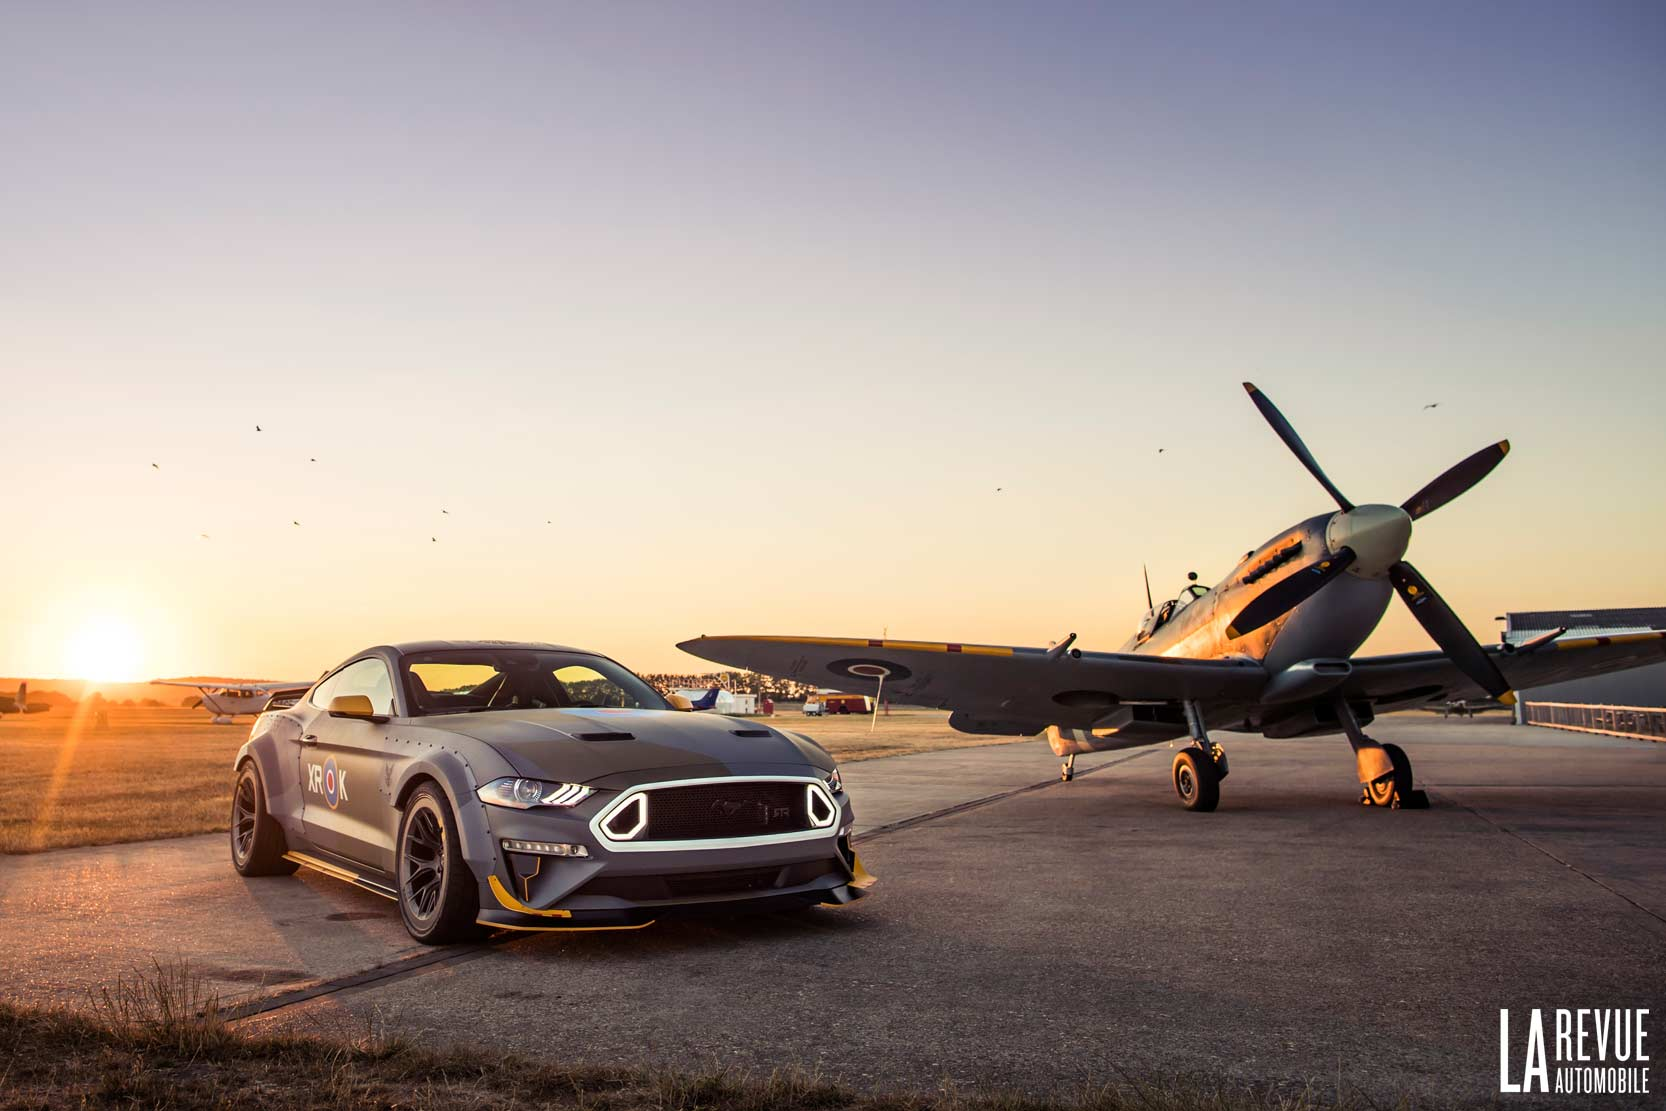 Exterieur_Ford-Mustang-GT-Eagle-Squadron-Spitfire_10